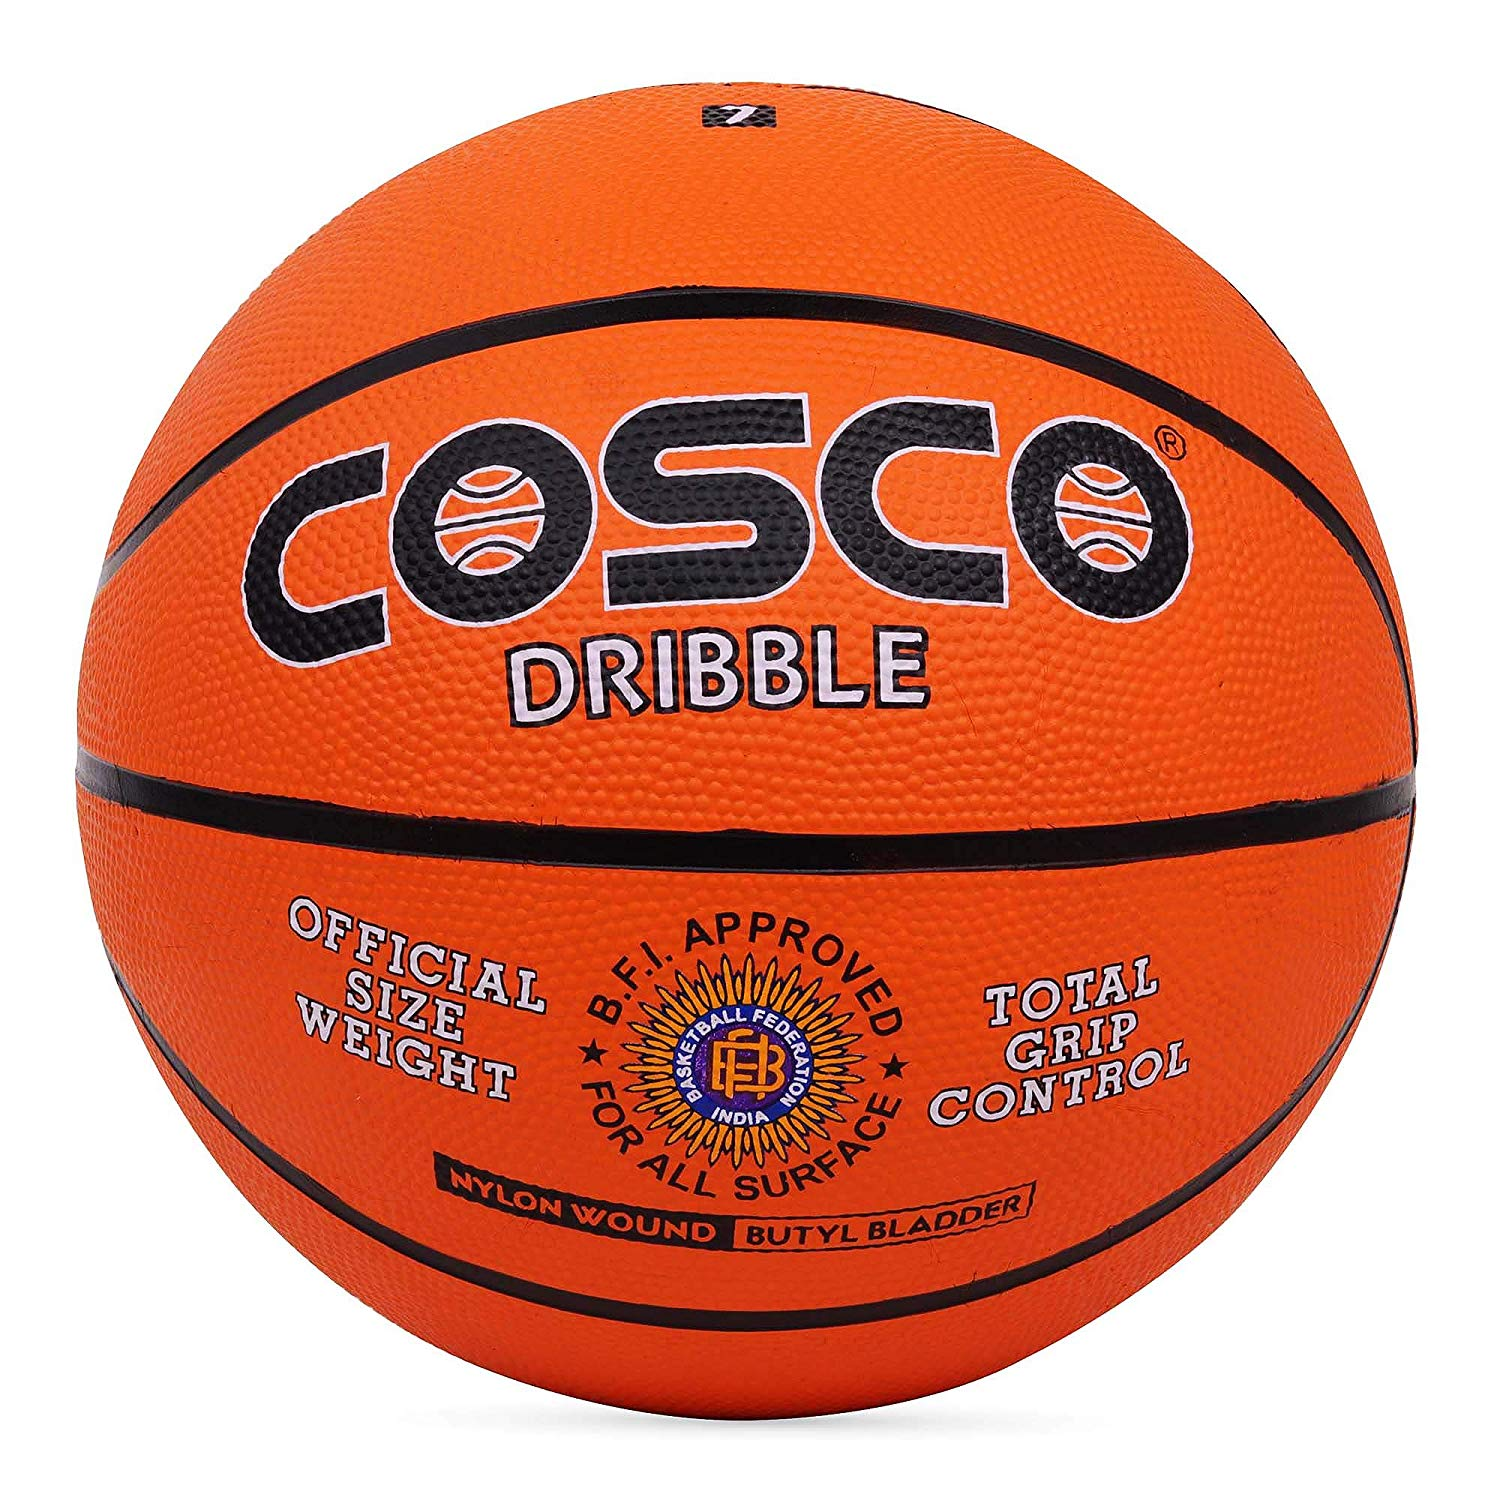 Cosco Dribble Basketball - Size 5